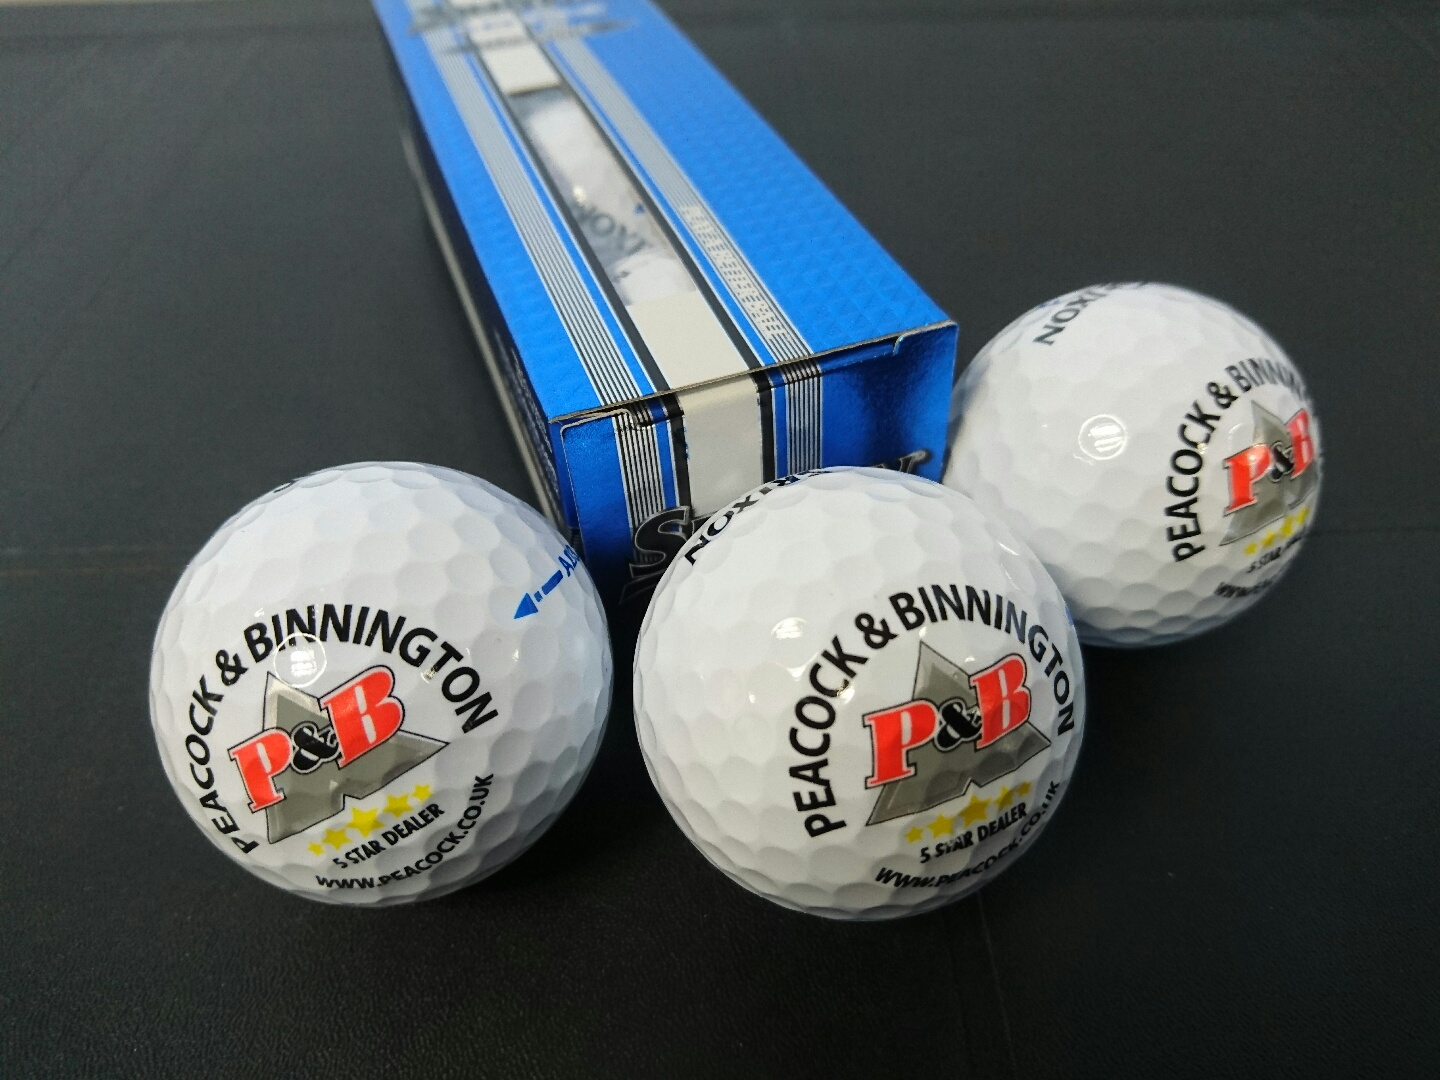 Charity golf day balls sponsored by Peacock and Binnington